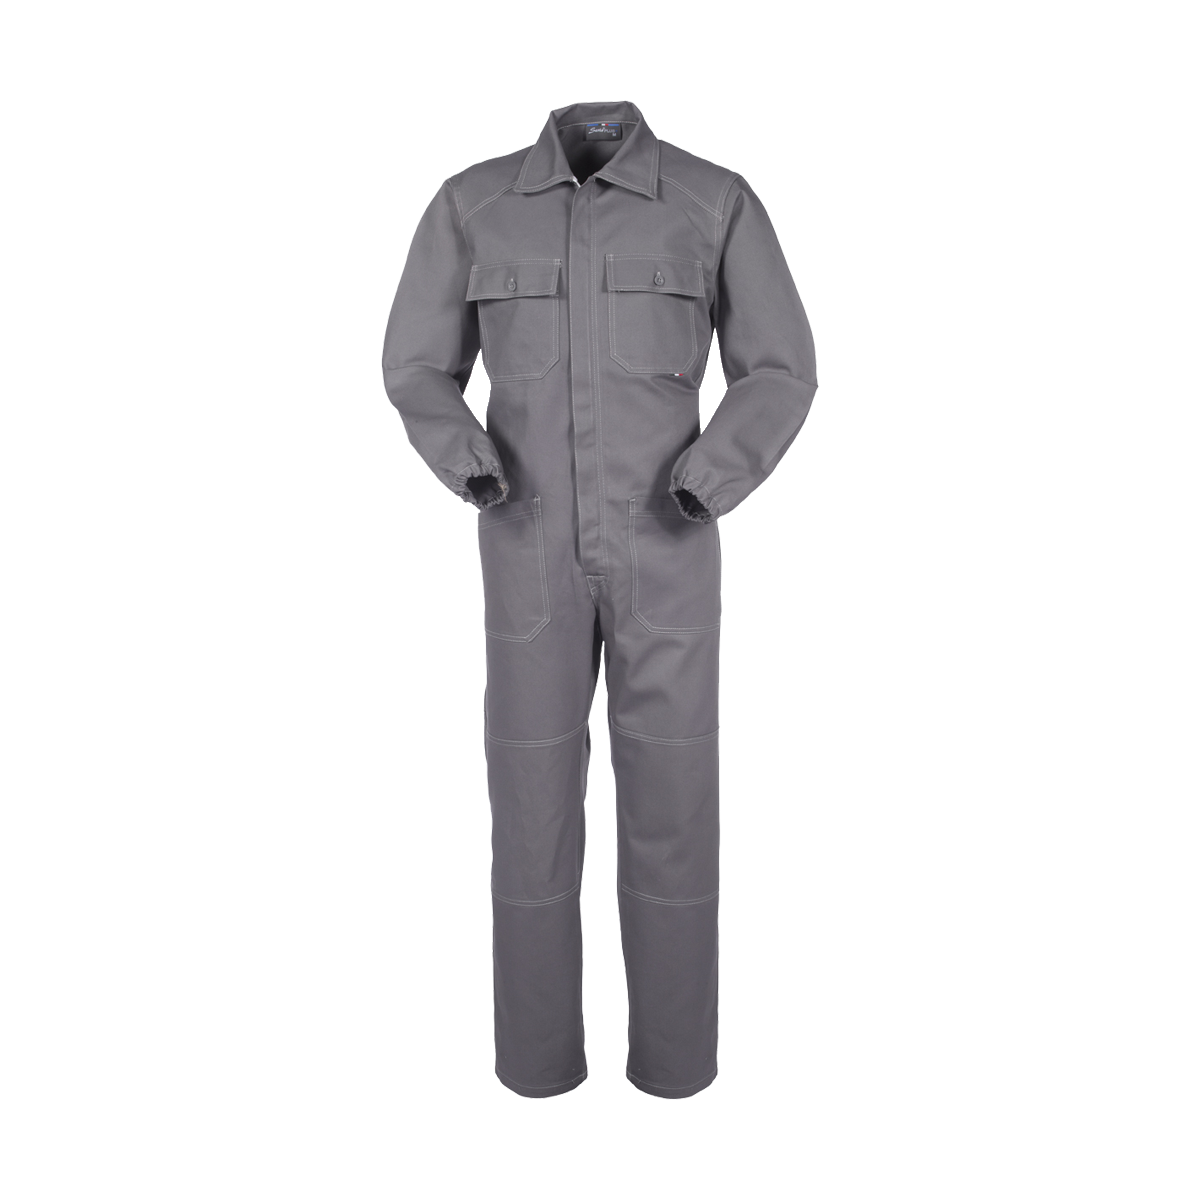 Yacht Uniform - Mechanic - Yachtuniform Coverall